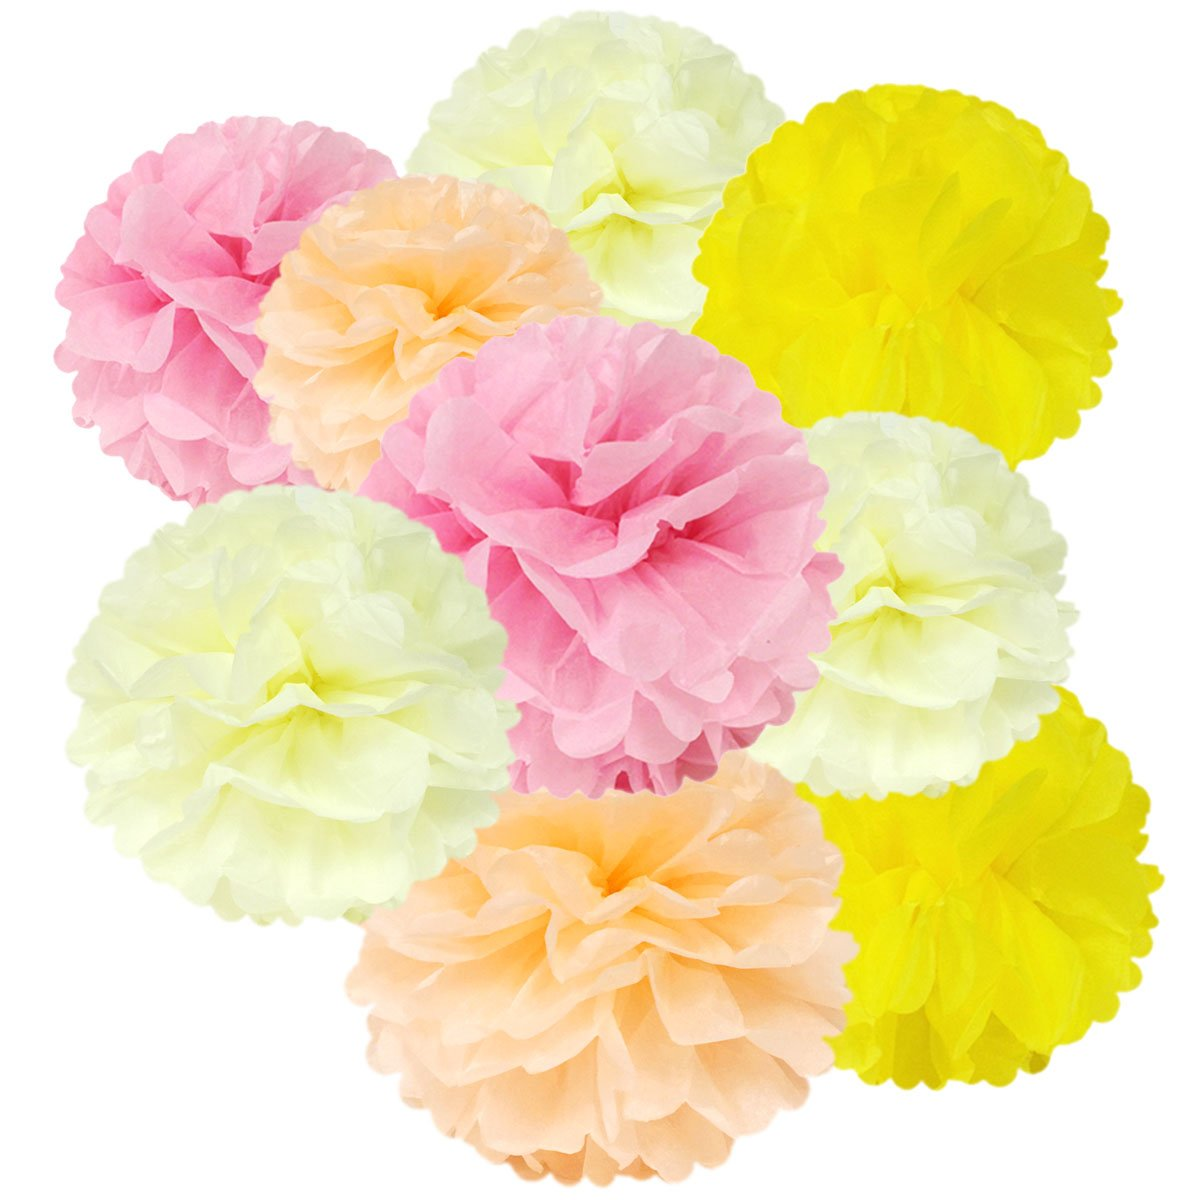 Wrapables A70079 Set of 12 Tissue Pom Poms Party Decorations for Weddings, Birthday Parties Baby Showers and Nursery Decor, Pink/Peach/Ivory/Yellow